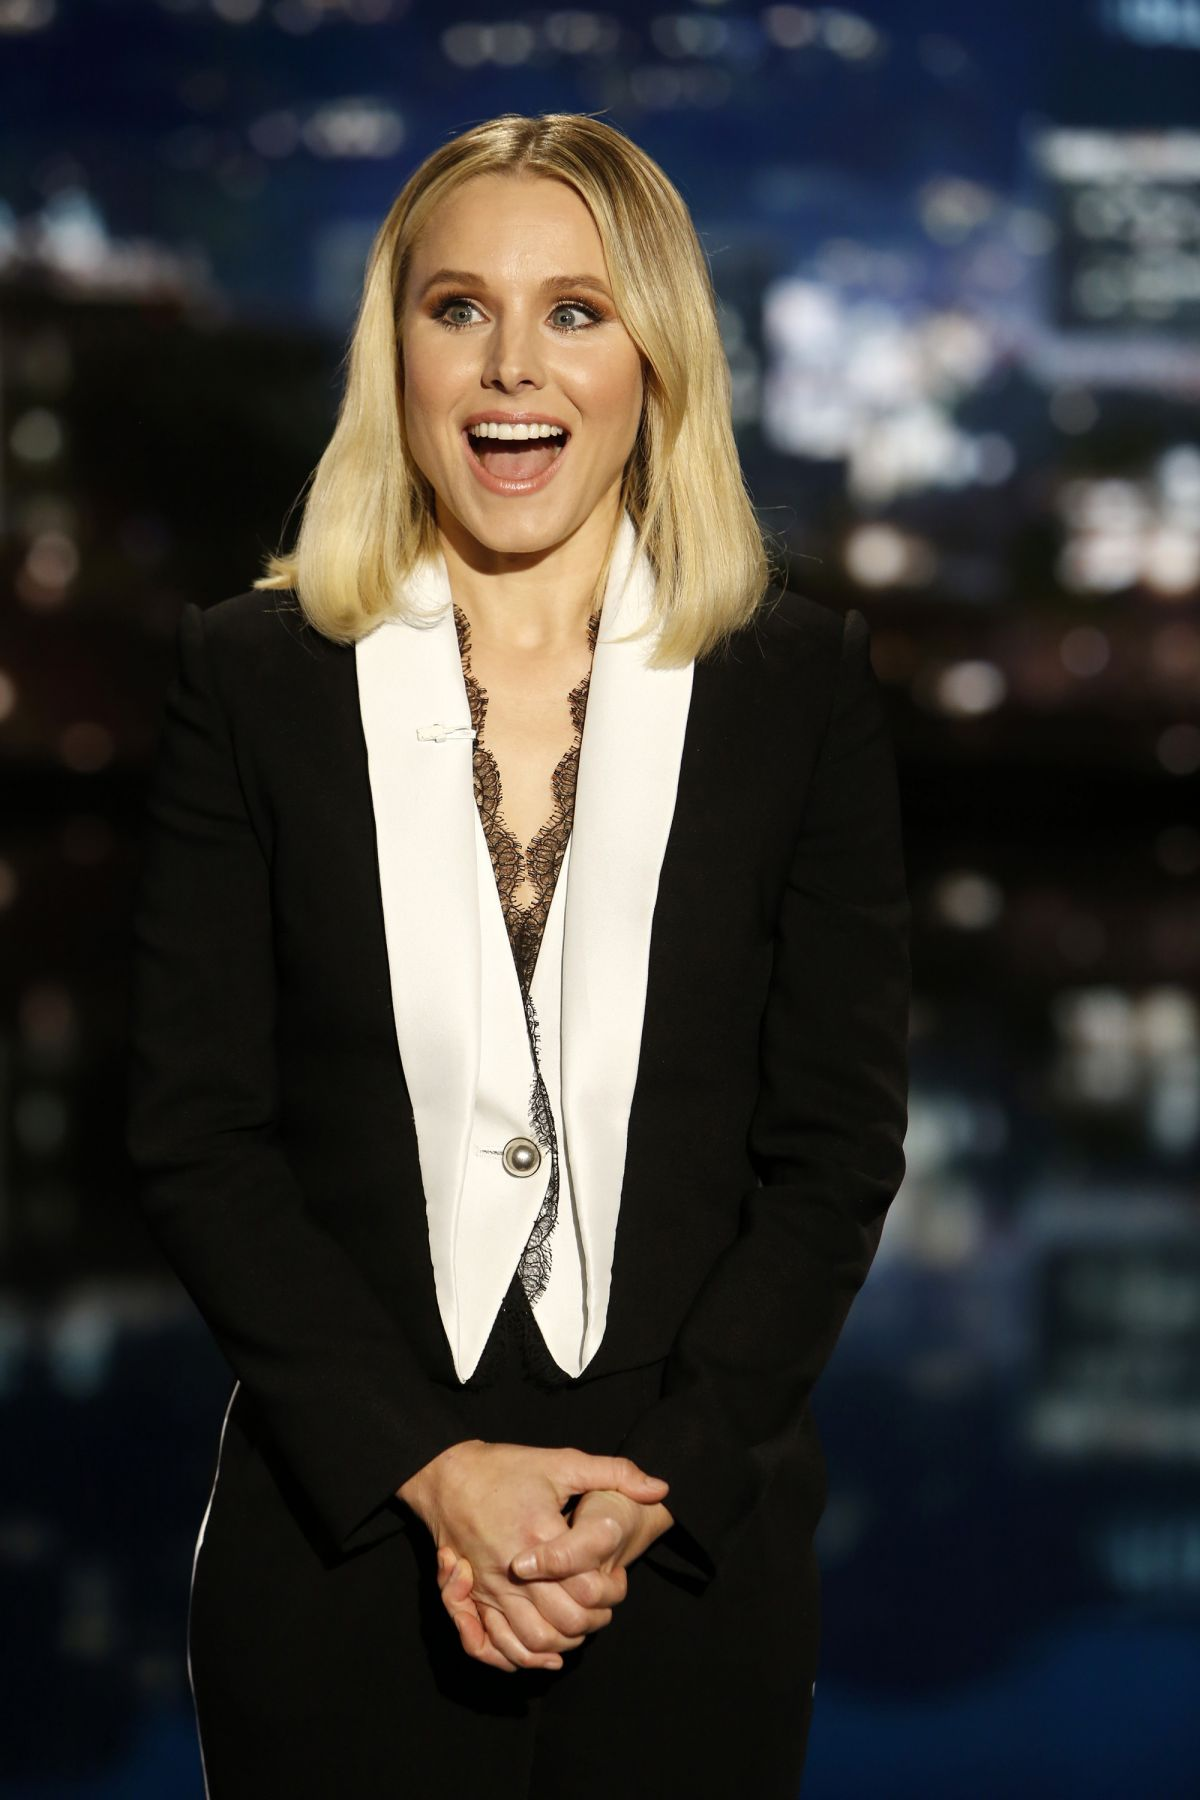 KRISTEN BELL at Jimmy Kimmel Live in Hollywood 05/04/2017